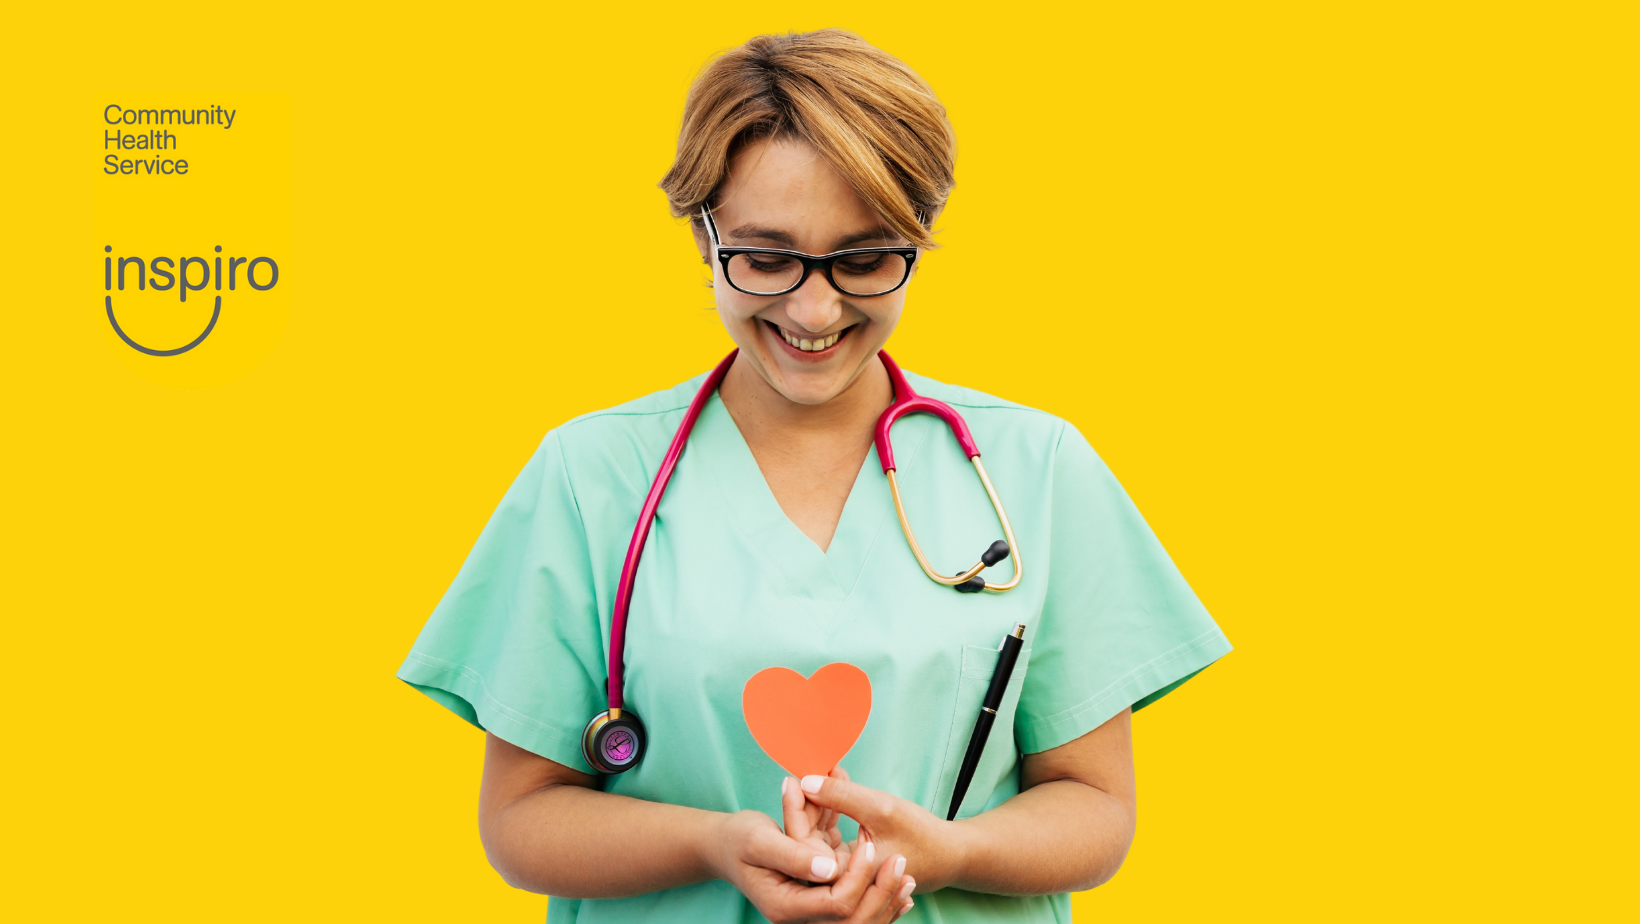 Get sexual health advice from our community nurse